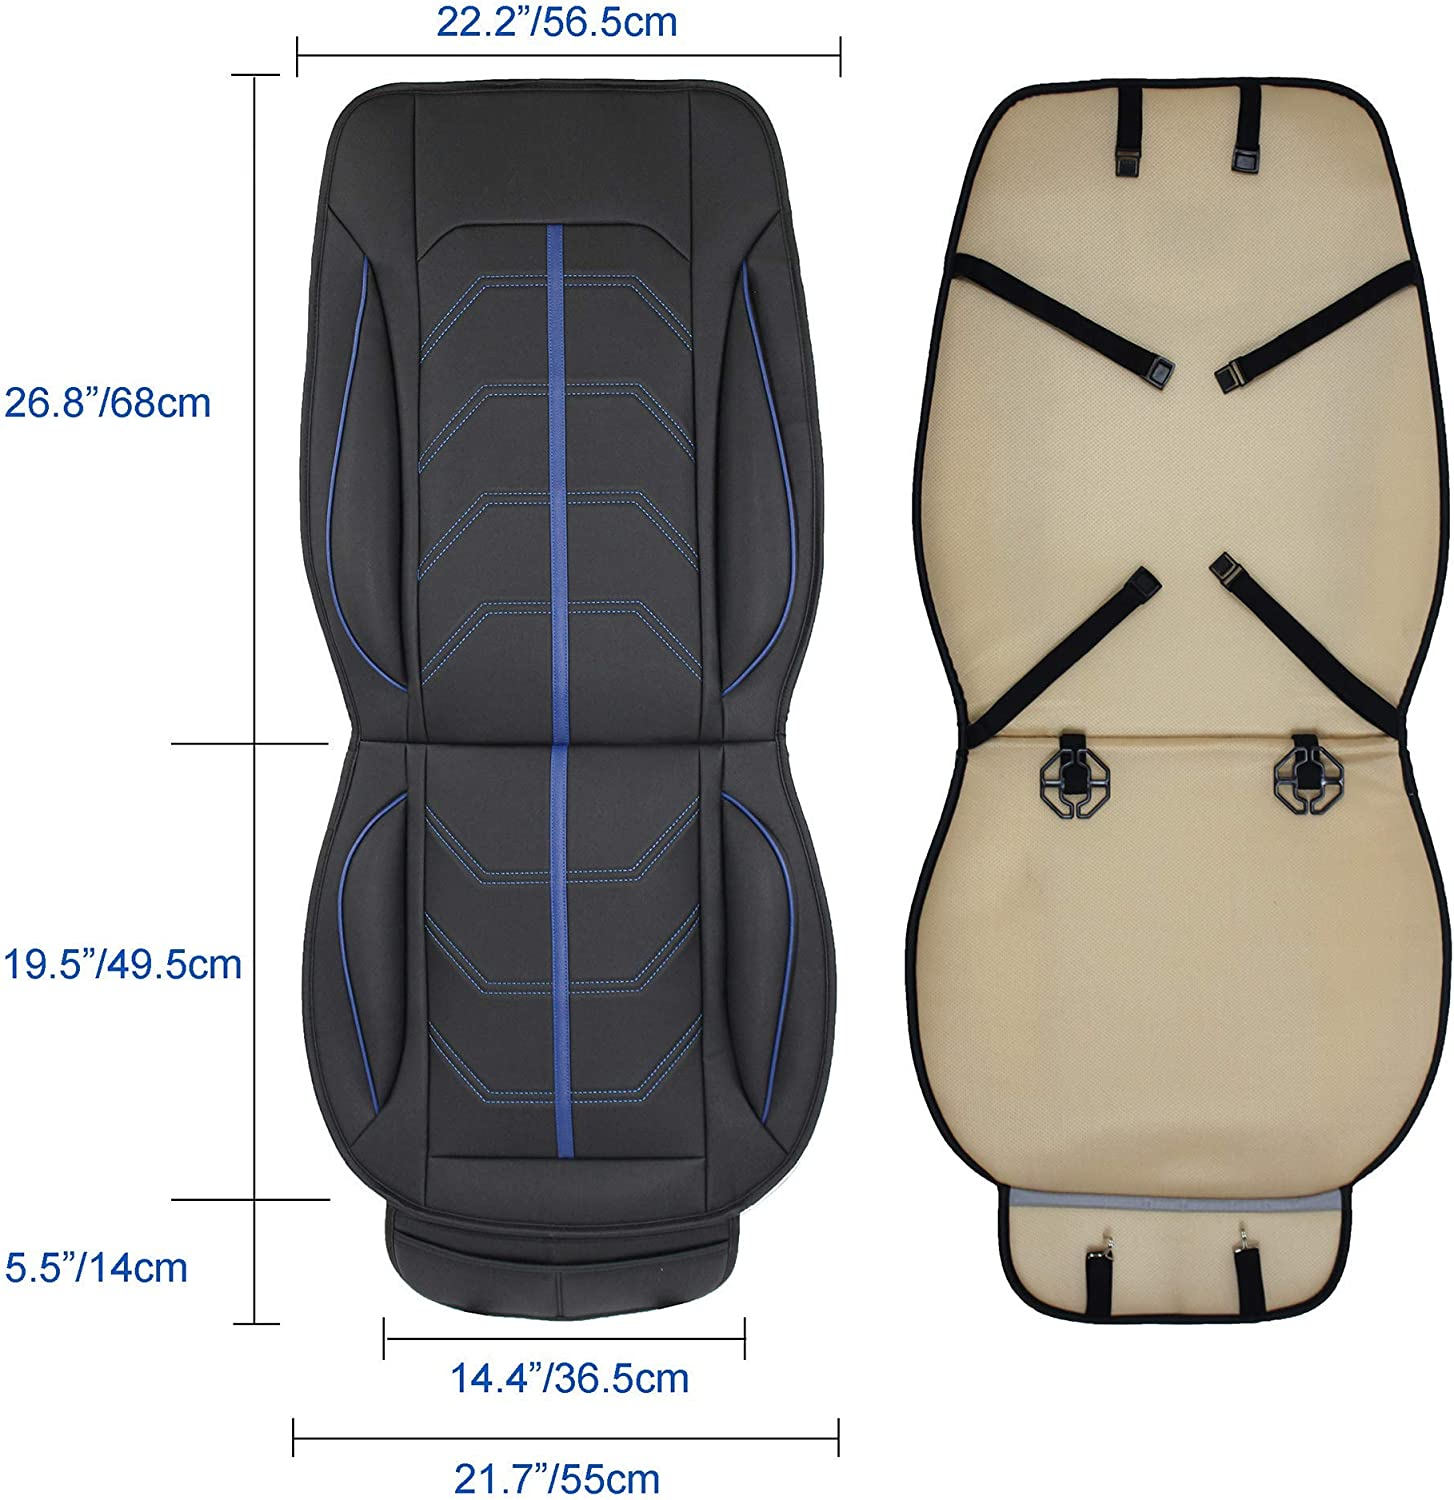 Eaglet Luxury Leatherette Sporty Universal Fit Front Car Seat Cover Easy to Install Blue on Black 1 Piece